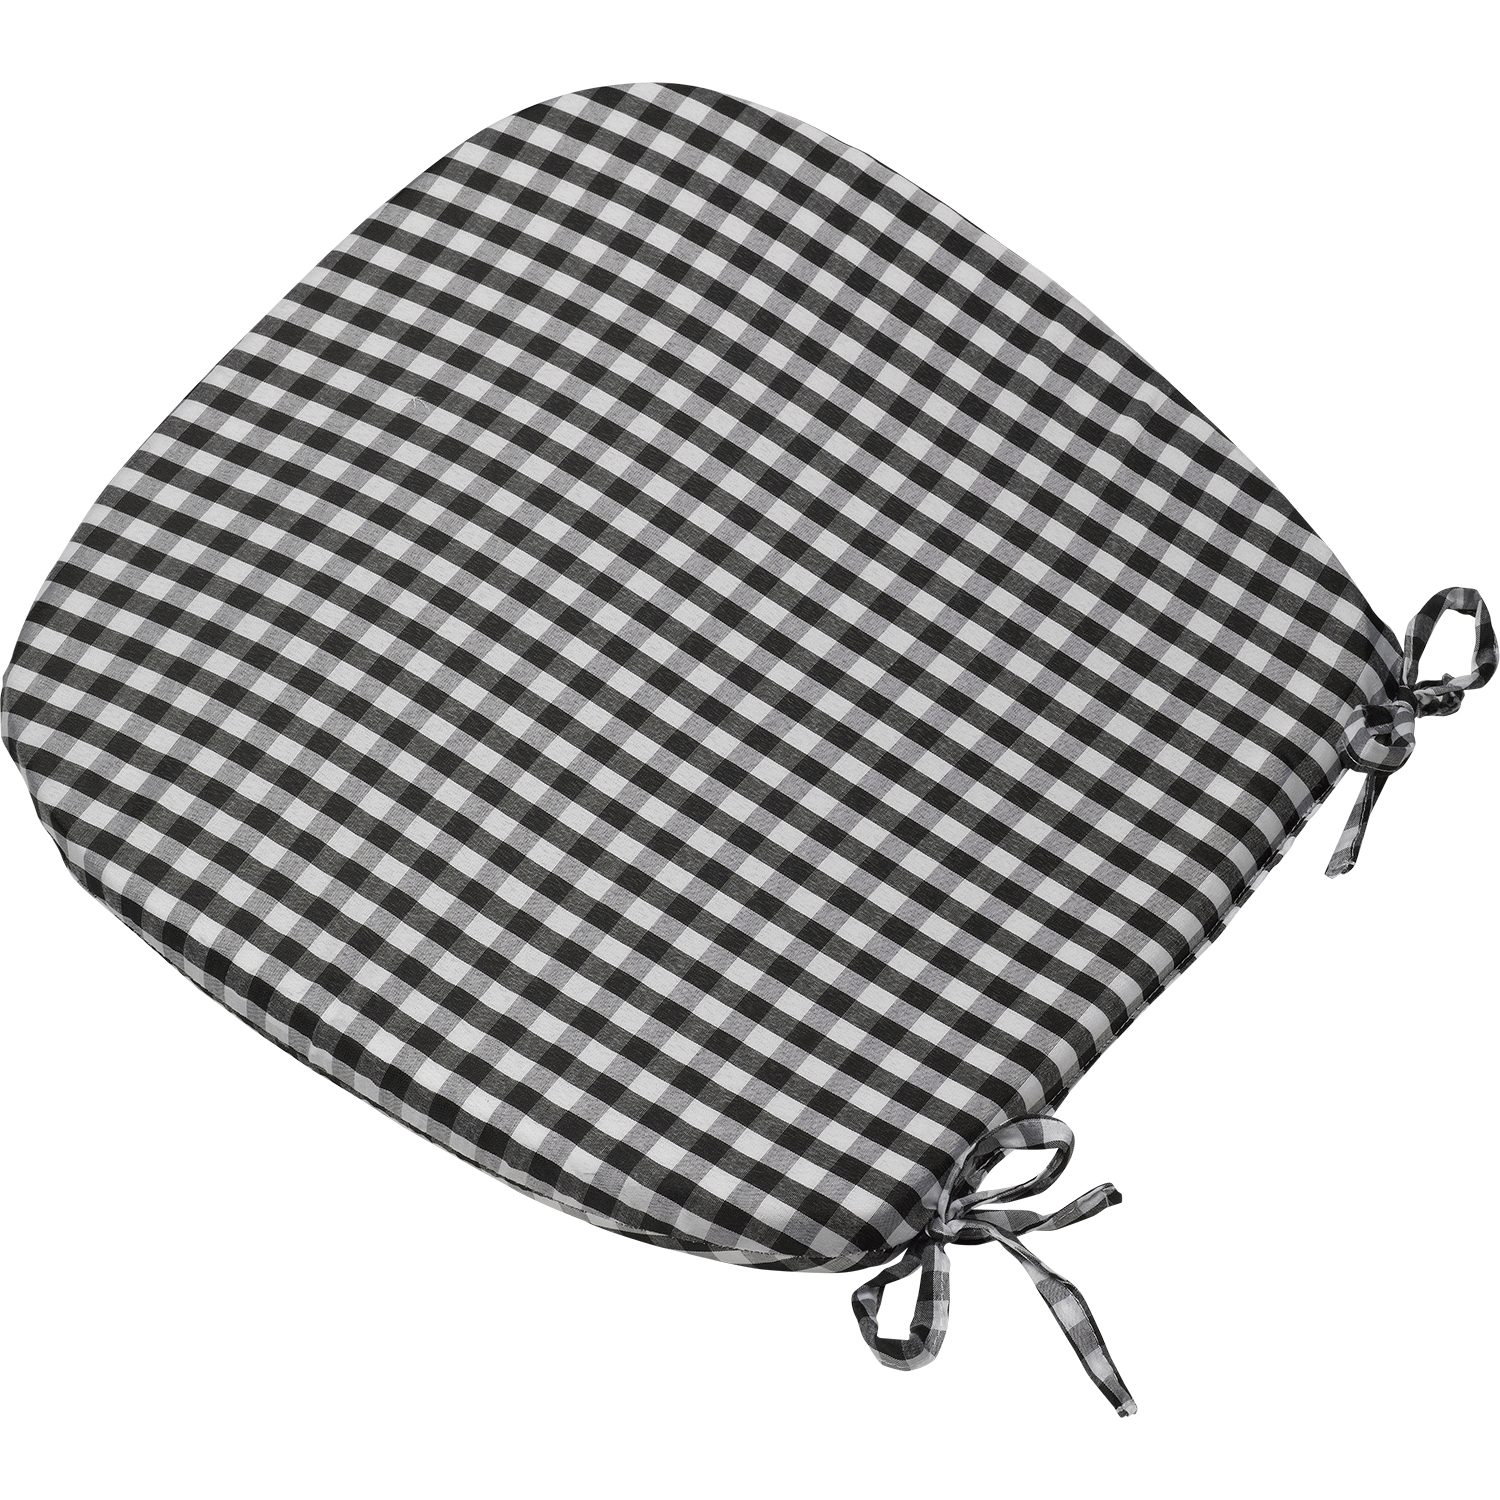 chair cushions tie on full tilt first ski boots gingham check seat pad 16 quot x kitchen outdoor